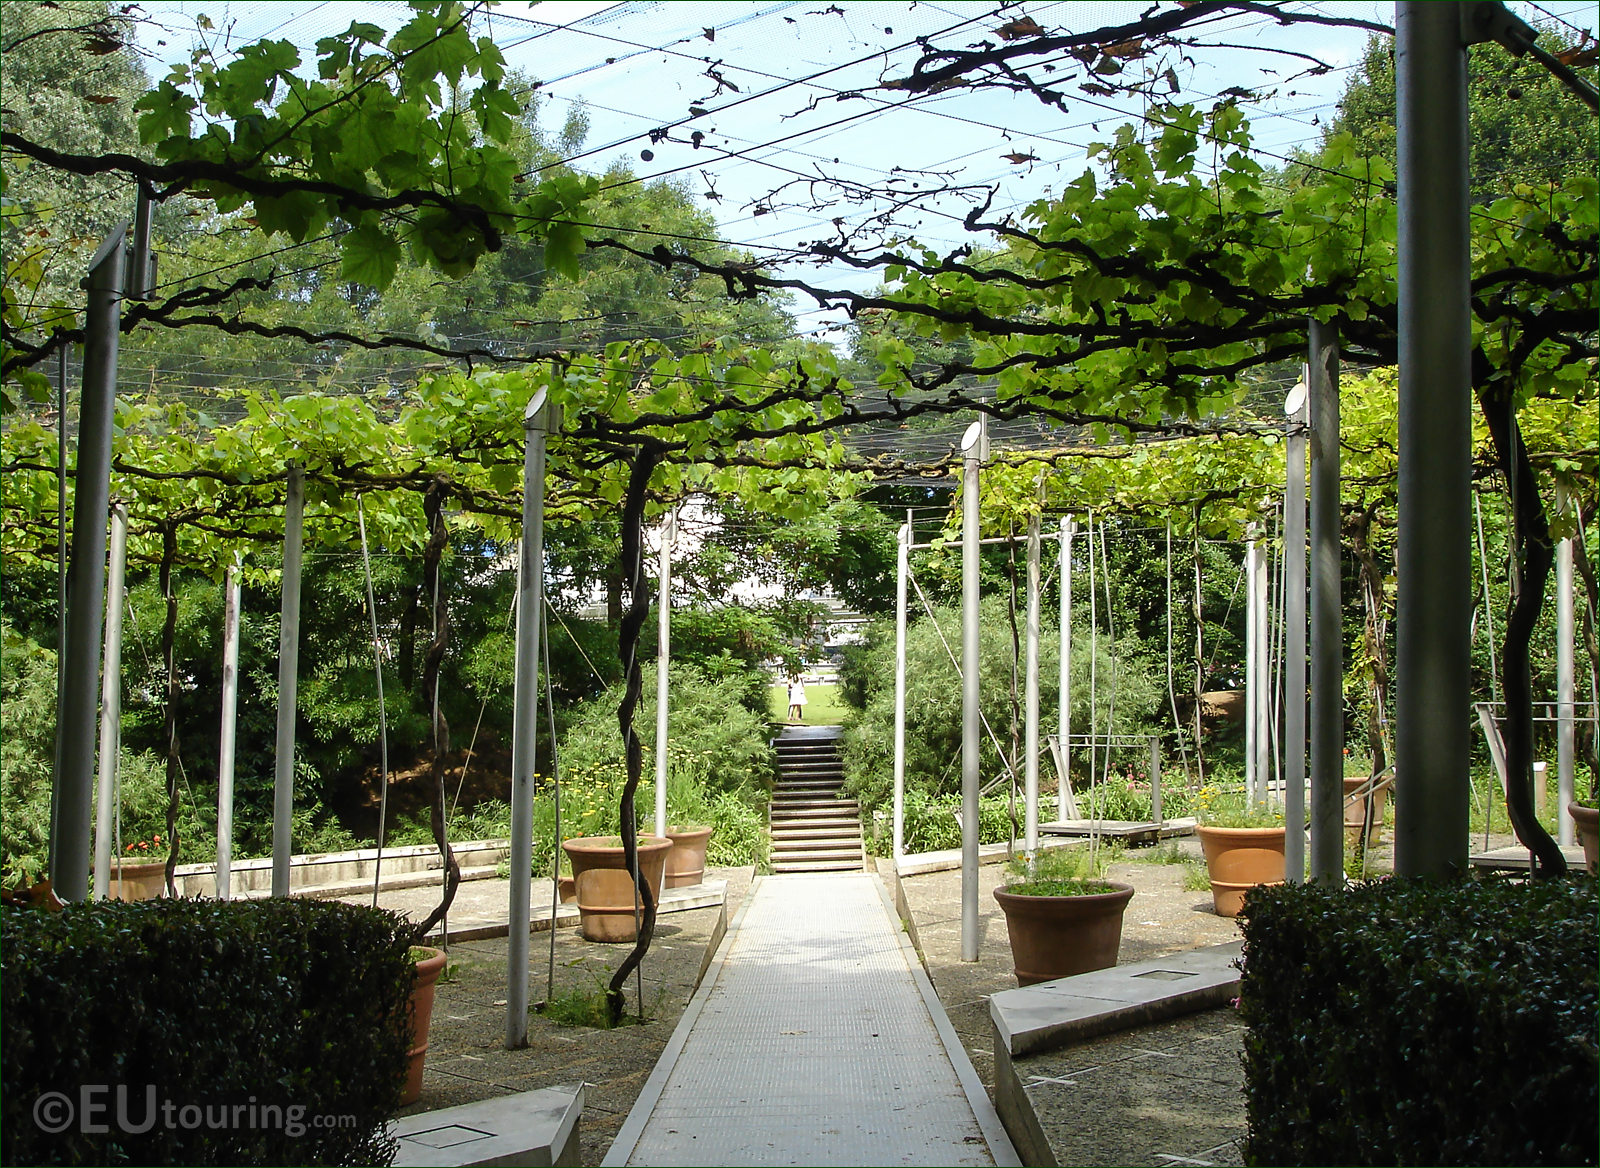 hd photos of jardin de la treille vineyard inside parc de